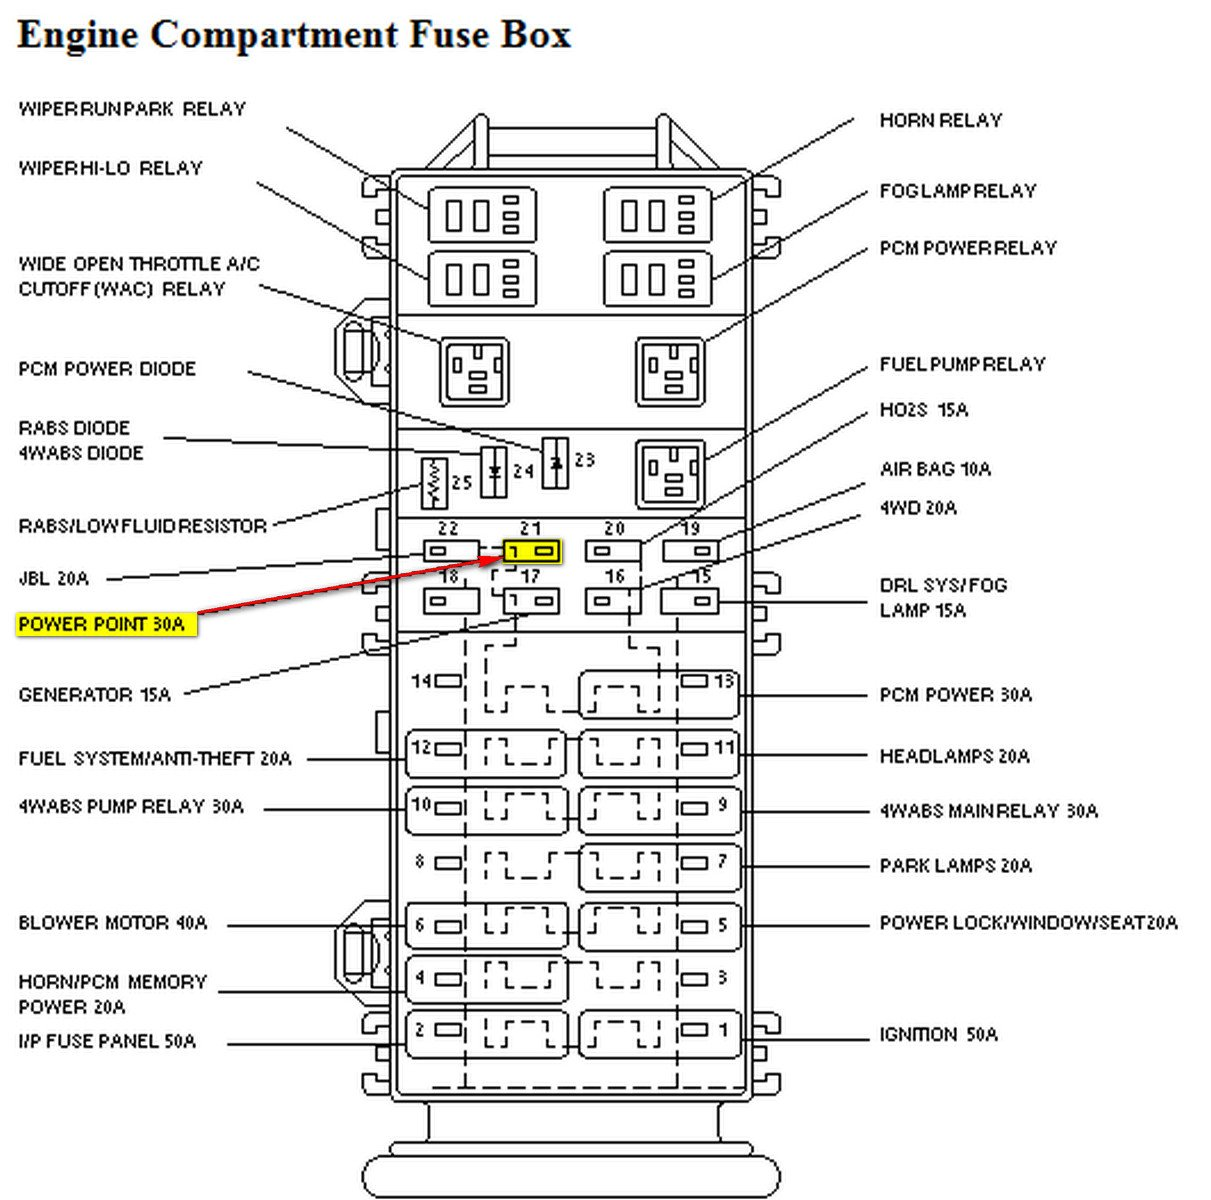 97 Expedition 4x4 Fuse Box Diagram Auto Electrical Wiring 1997 Ford Explorer Xlt 5l Panel Ranger 12v Aux Power Point